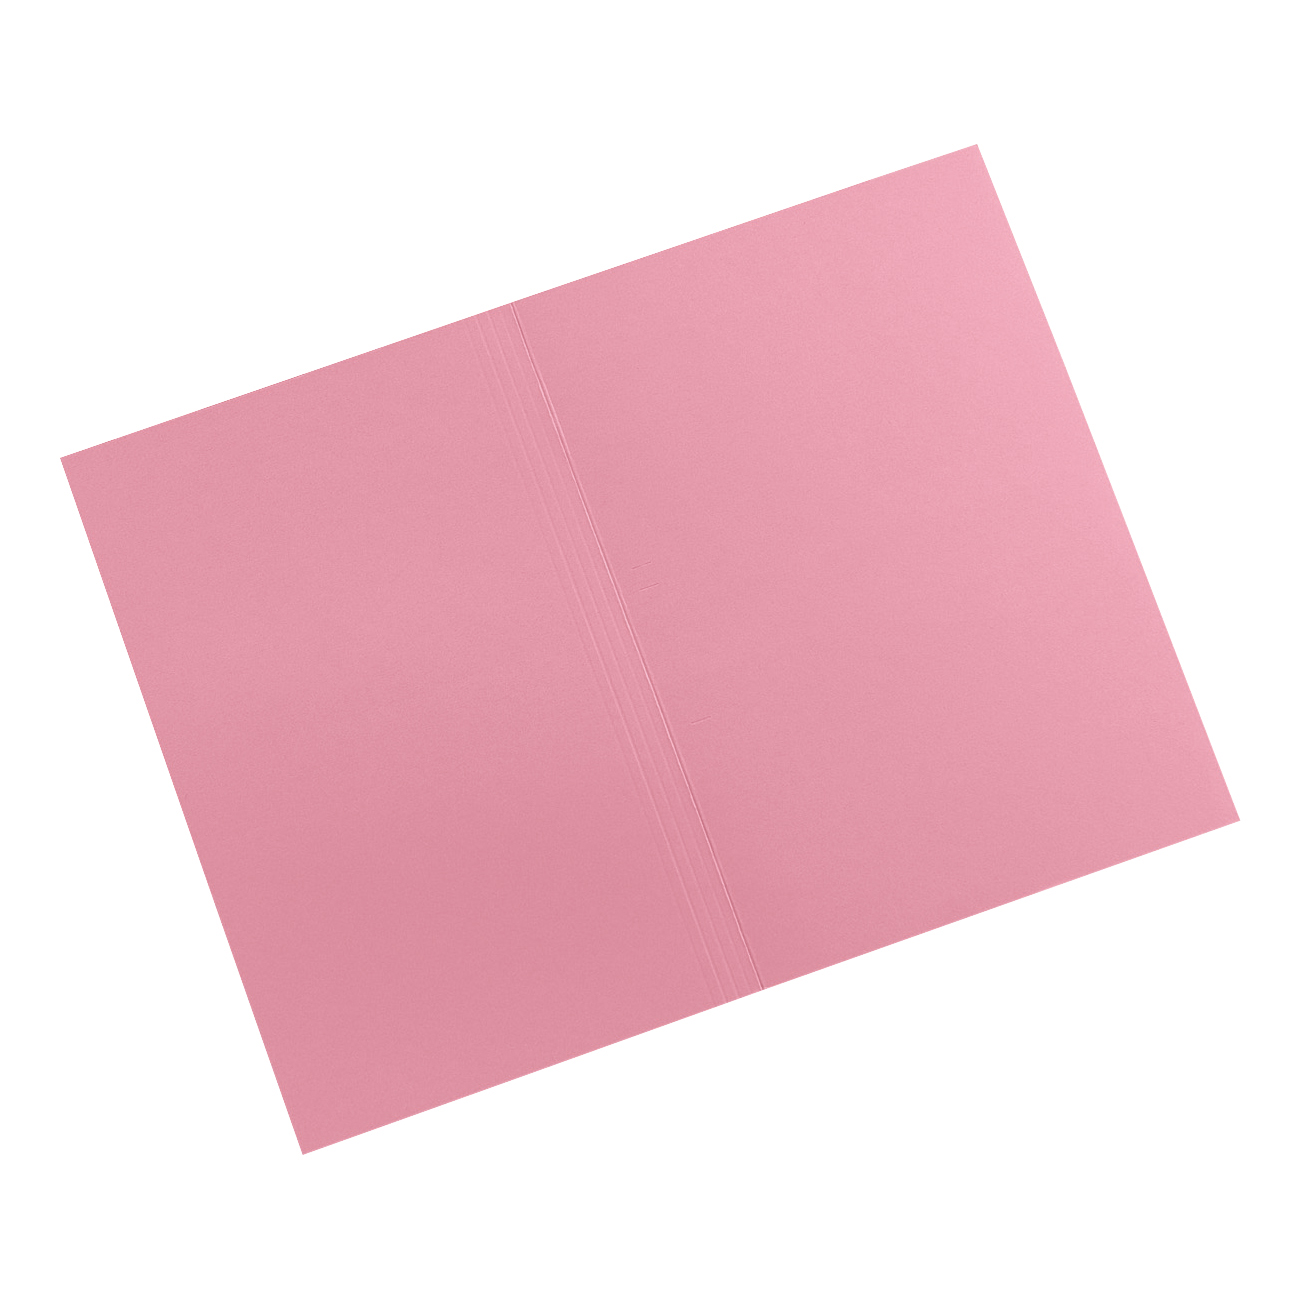 Square Cut Folders 5 Star Elite Square Cut Folders 315gsm Heavyweight Manilla Foolscap Pink Pack 100